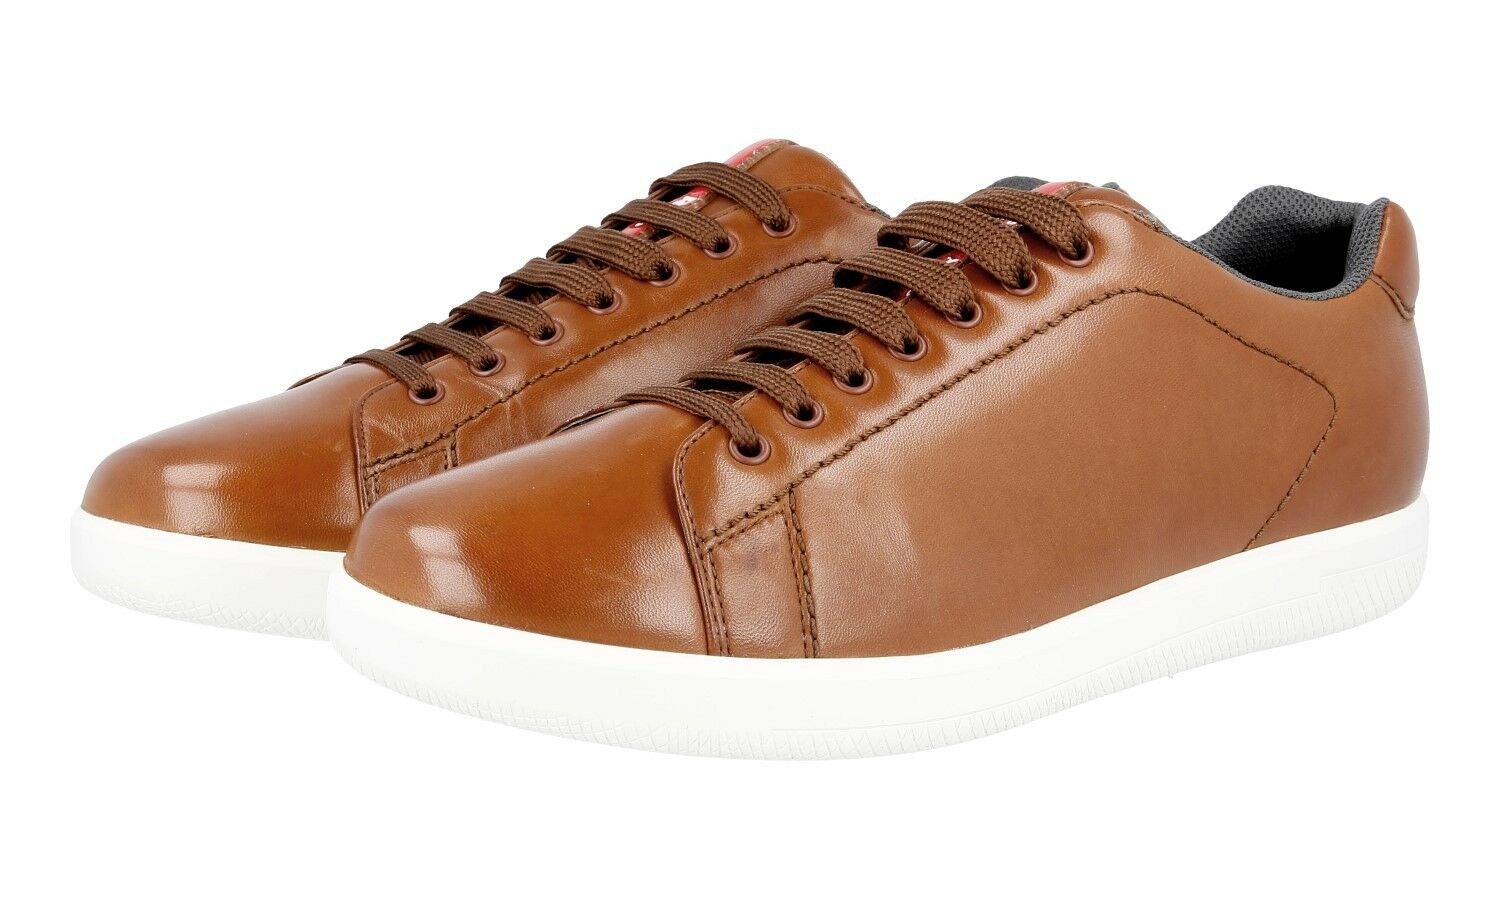 LUXUS PRADA SNEAKER SCHUHE 4E2988 brown NEU NEW 8 42 42,5